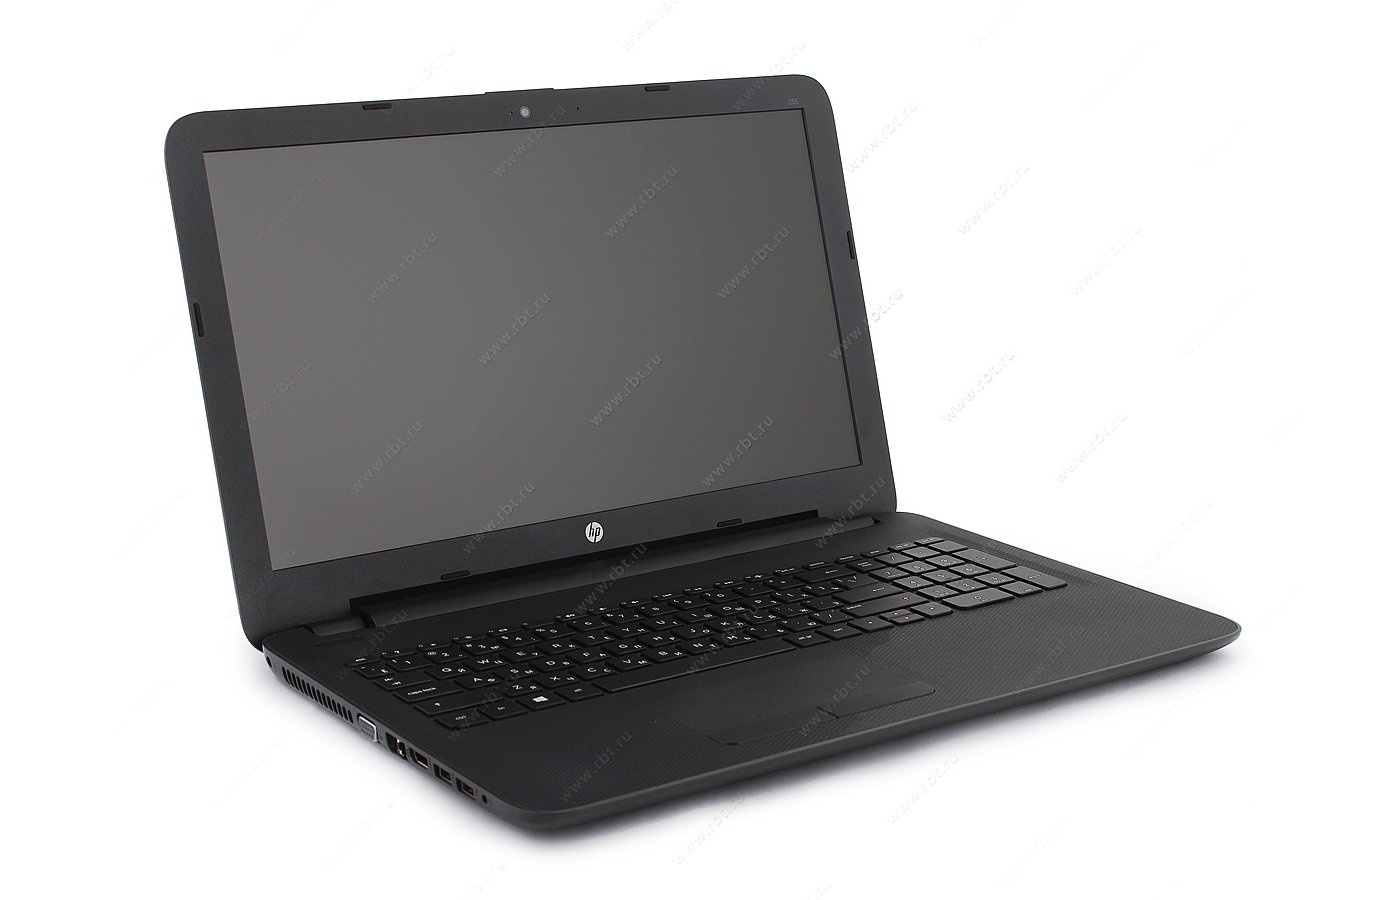 Ноутбук HP 255 G4 /N0Y69ES/ AMD E1 6015/2Gb/500Gb/R2/15.6/WiFi/BT/Cam/DOS